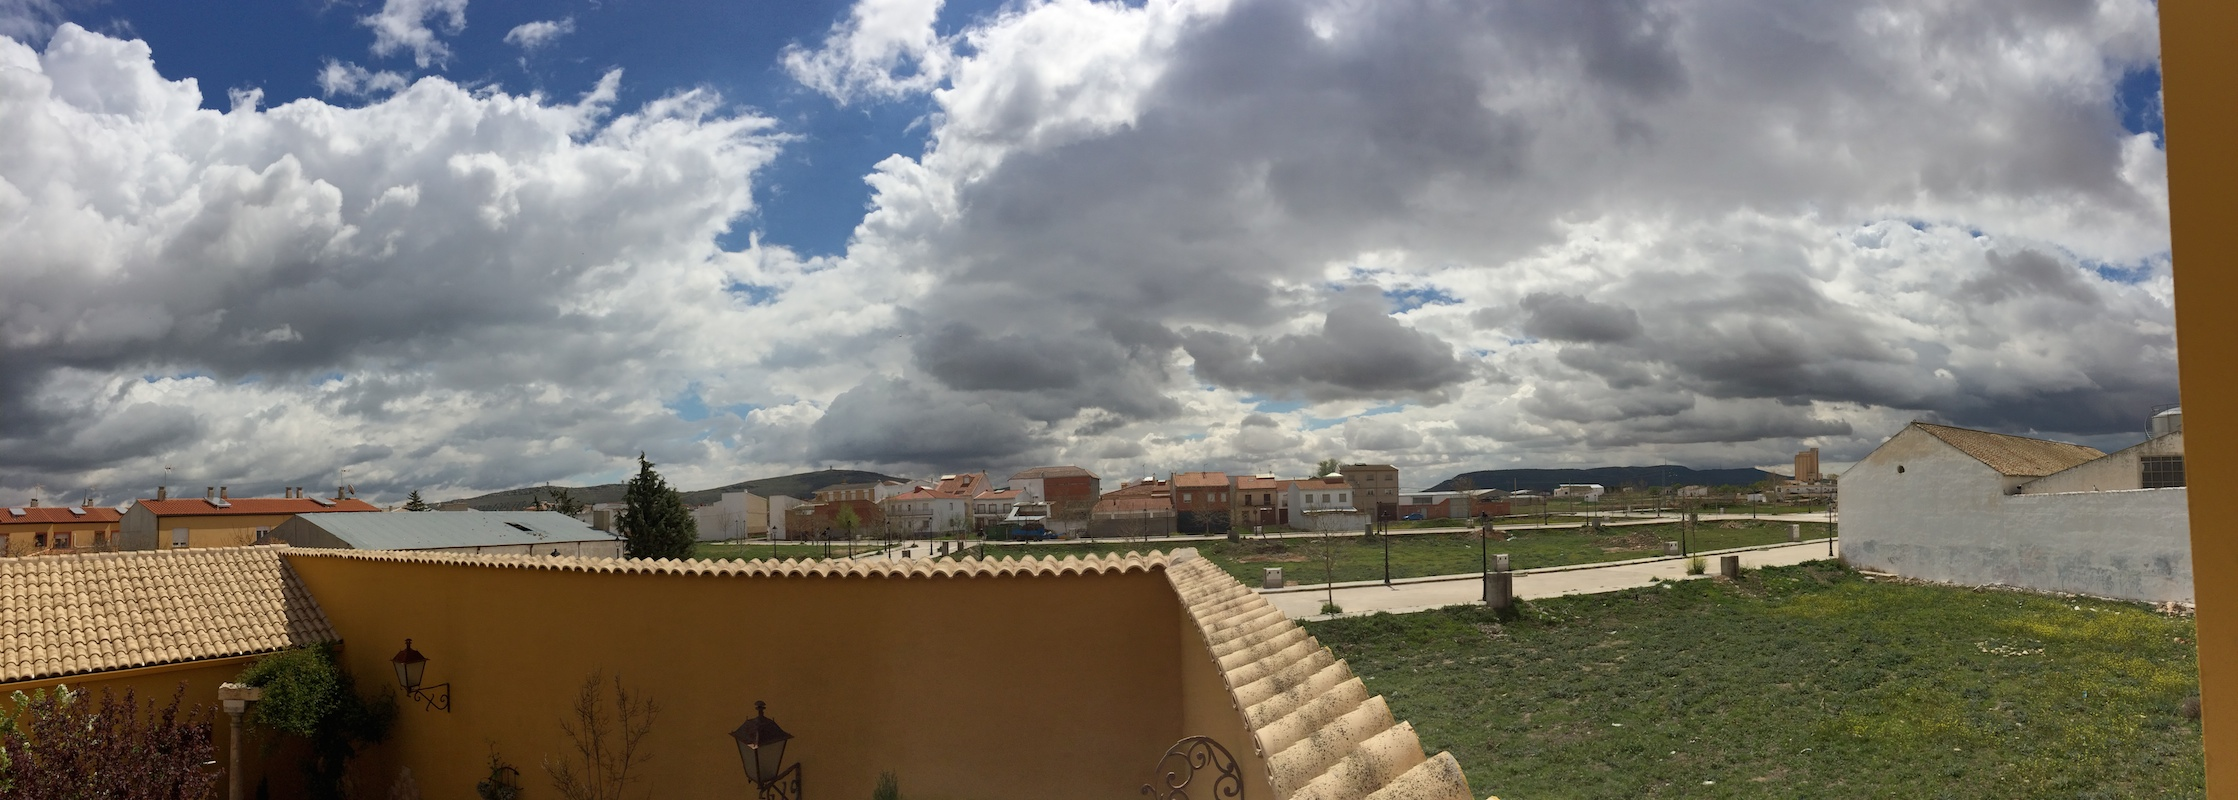 panoramica de herencia - ciudad real - foto por david carrero